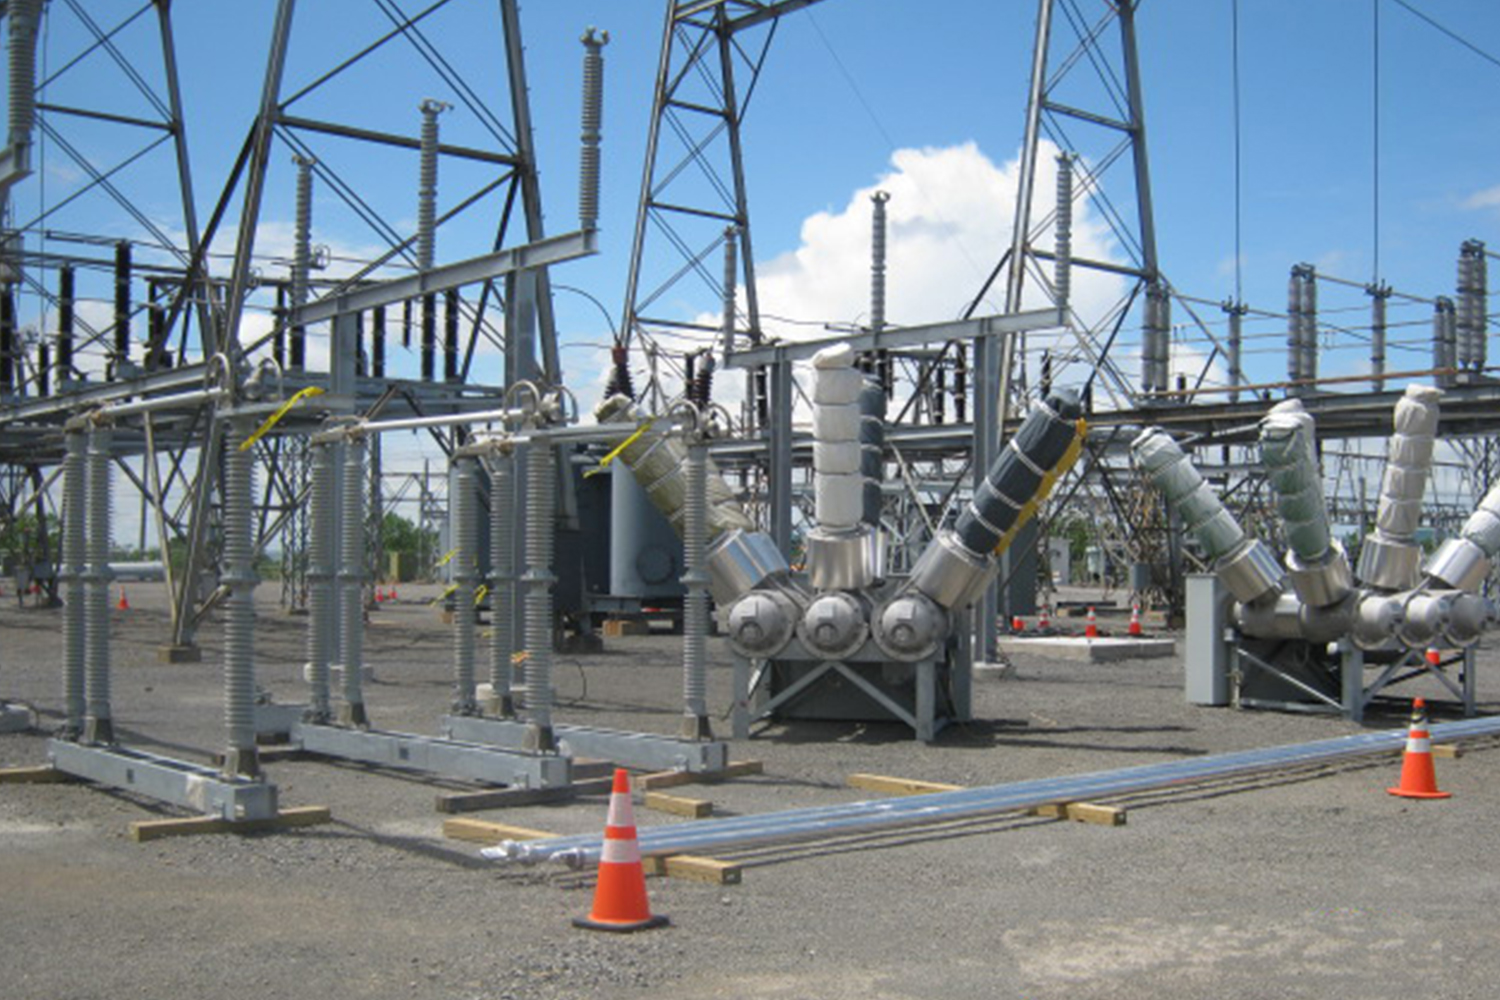 aldridge-electric-top-best-specialty-contractors-substation-electrical-transmission-distribution-construction-projects.jpg